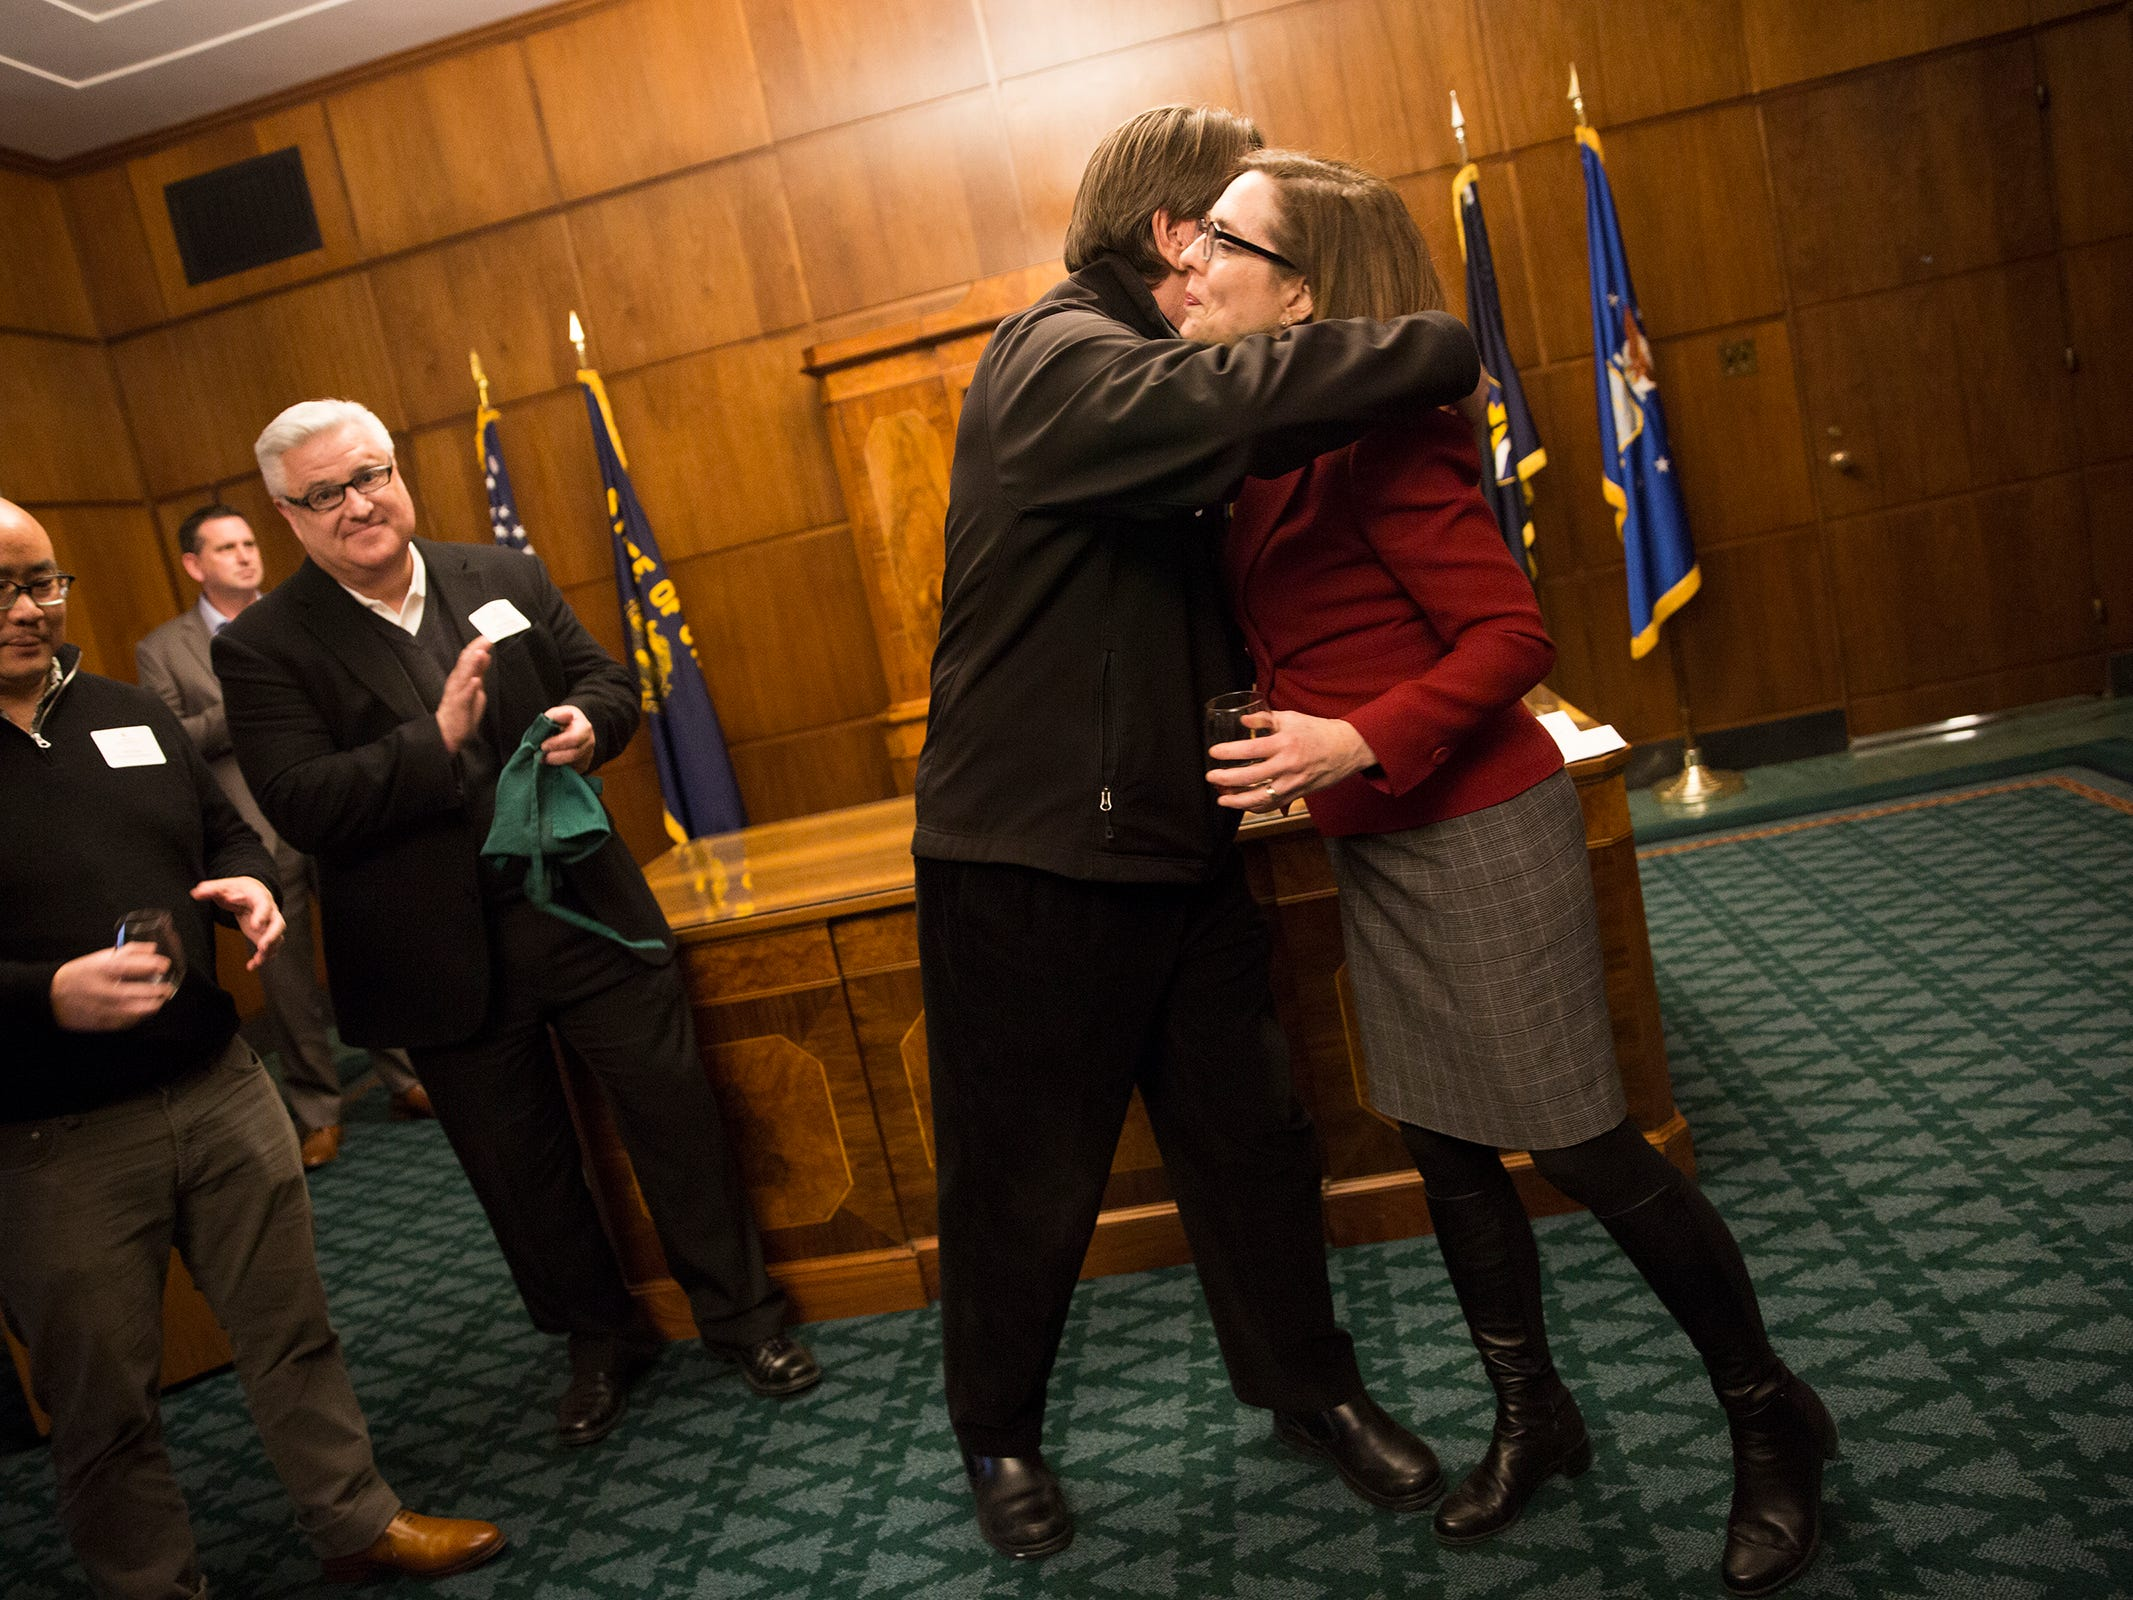 Willamette Valley Vineyard founder and president Jim Bernau and Gov. Kate Brown hug after their toast at a release party for the Oregon Solidarity Rose of Pinot Noir in the Governor's Kate Brown's ceremonial office at the Oregon State Capitol in Salem on Tuesday, March 5, 2019.